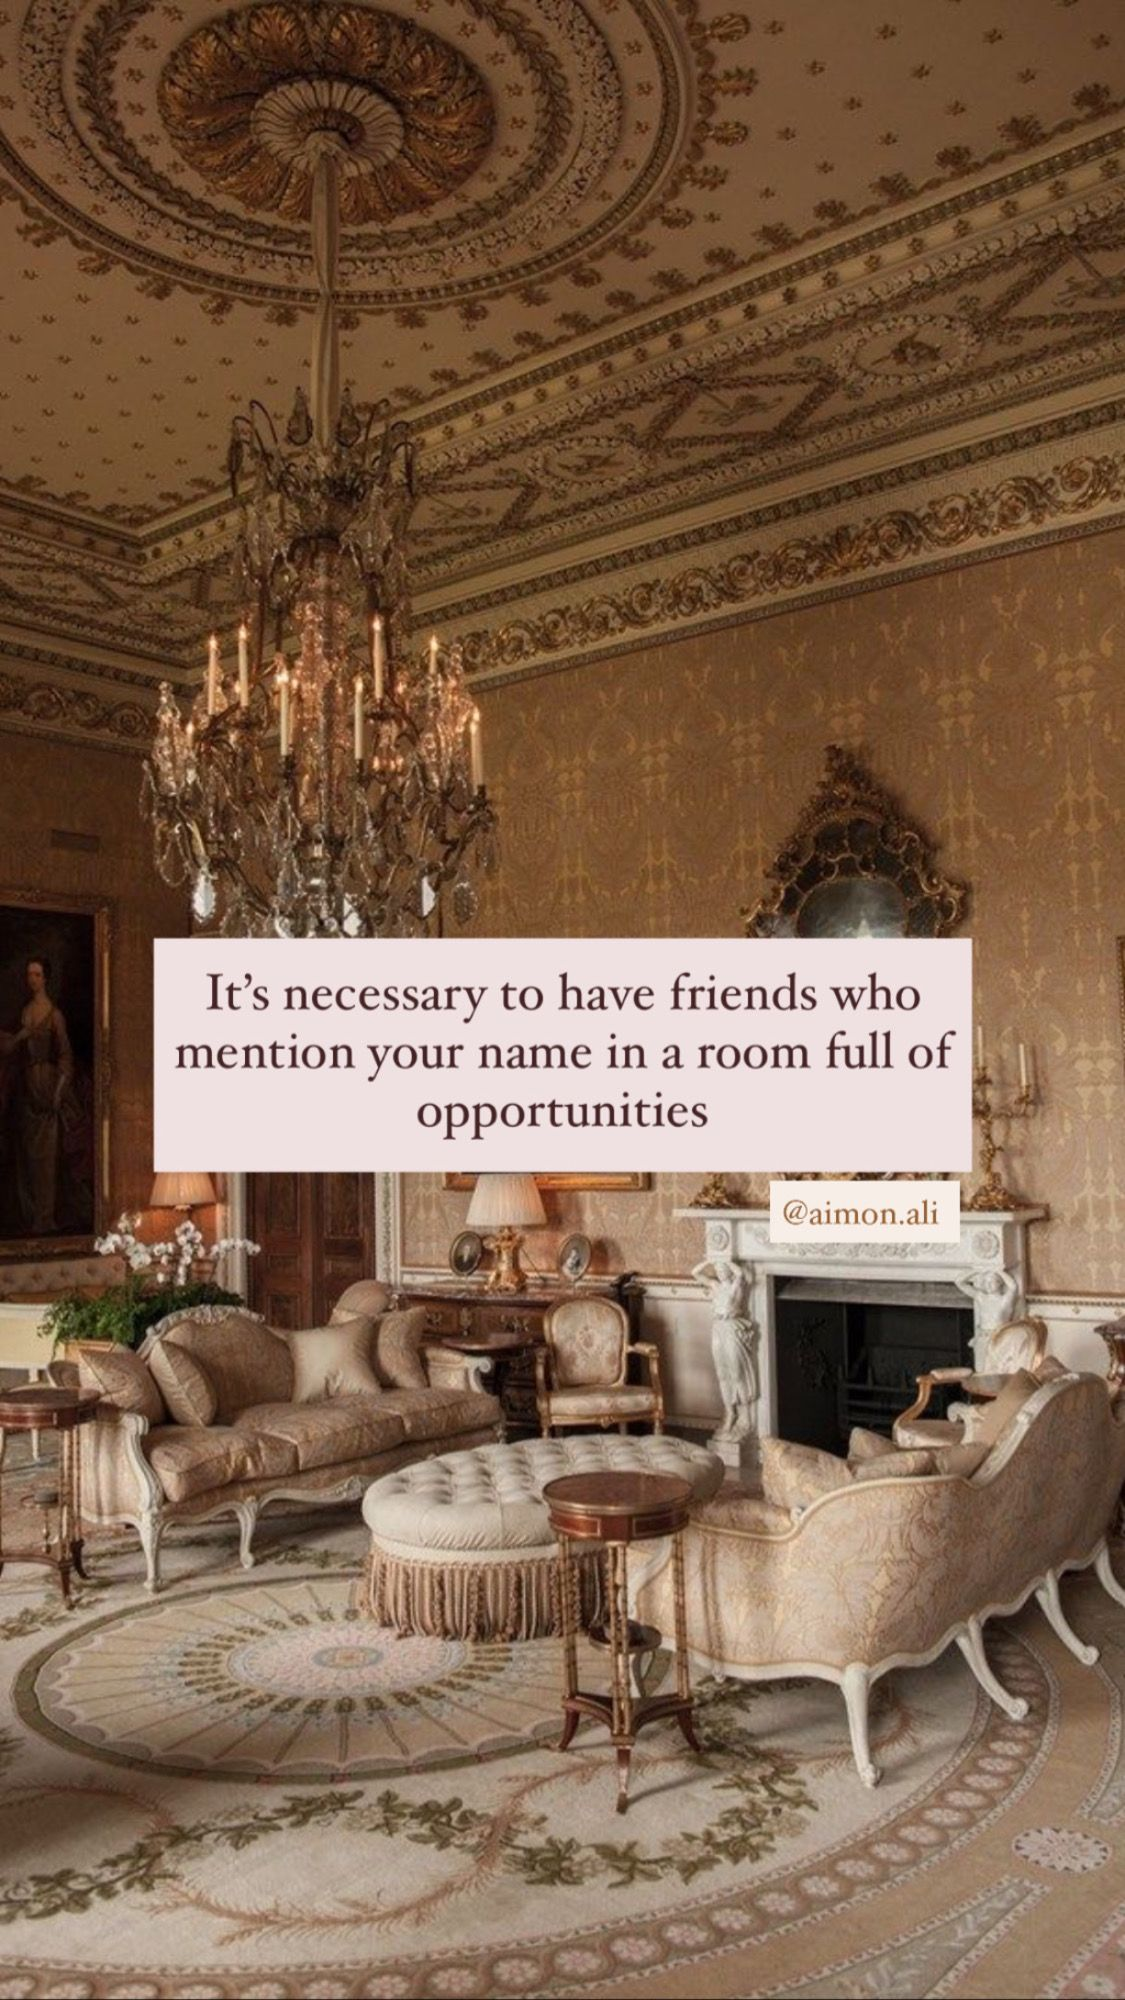 Quotes Room Dining Table Home Decor Rooms and random thoughts